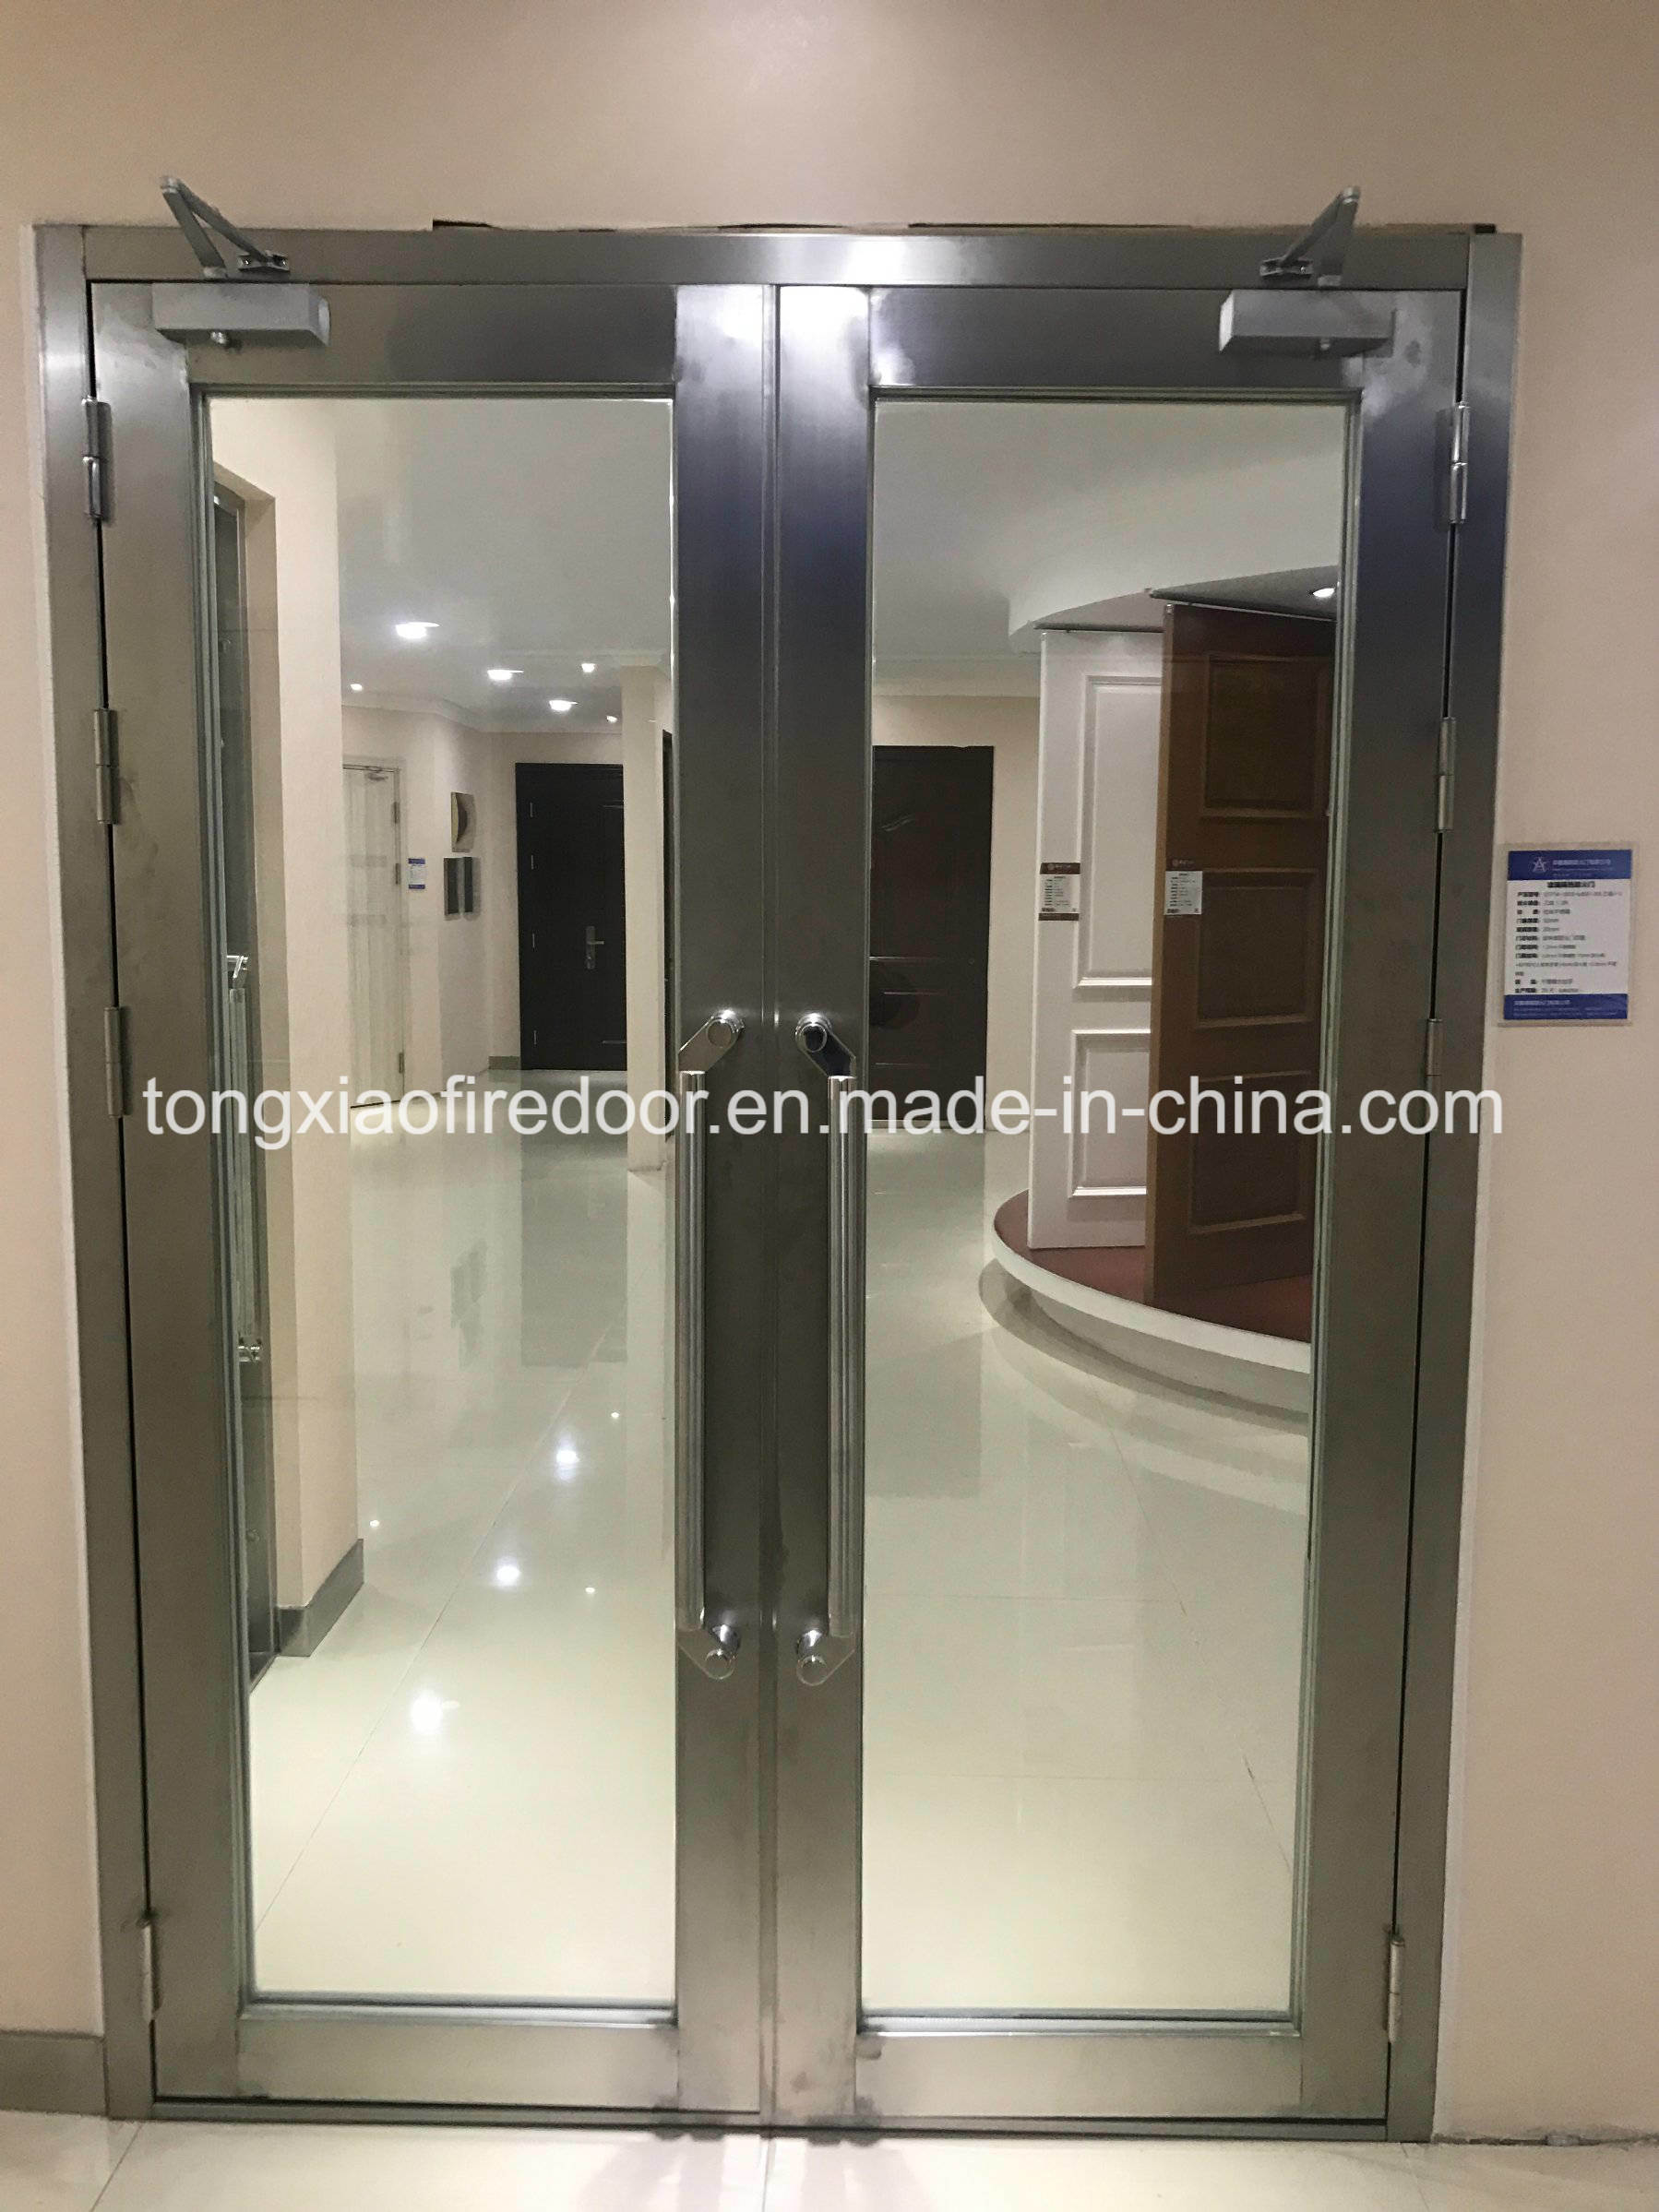 Glass fire doors china fire rated glass doors fire rated doors fire rating in case of outdoor door frame should used in conjunction with fire resistant glass planetlyrics Choice Image